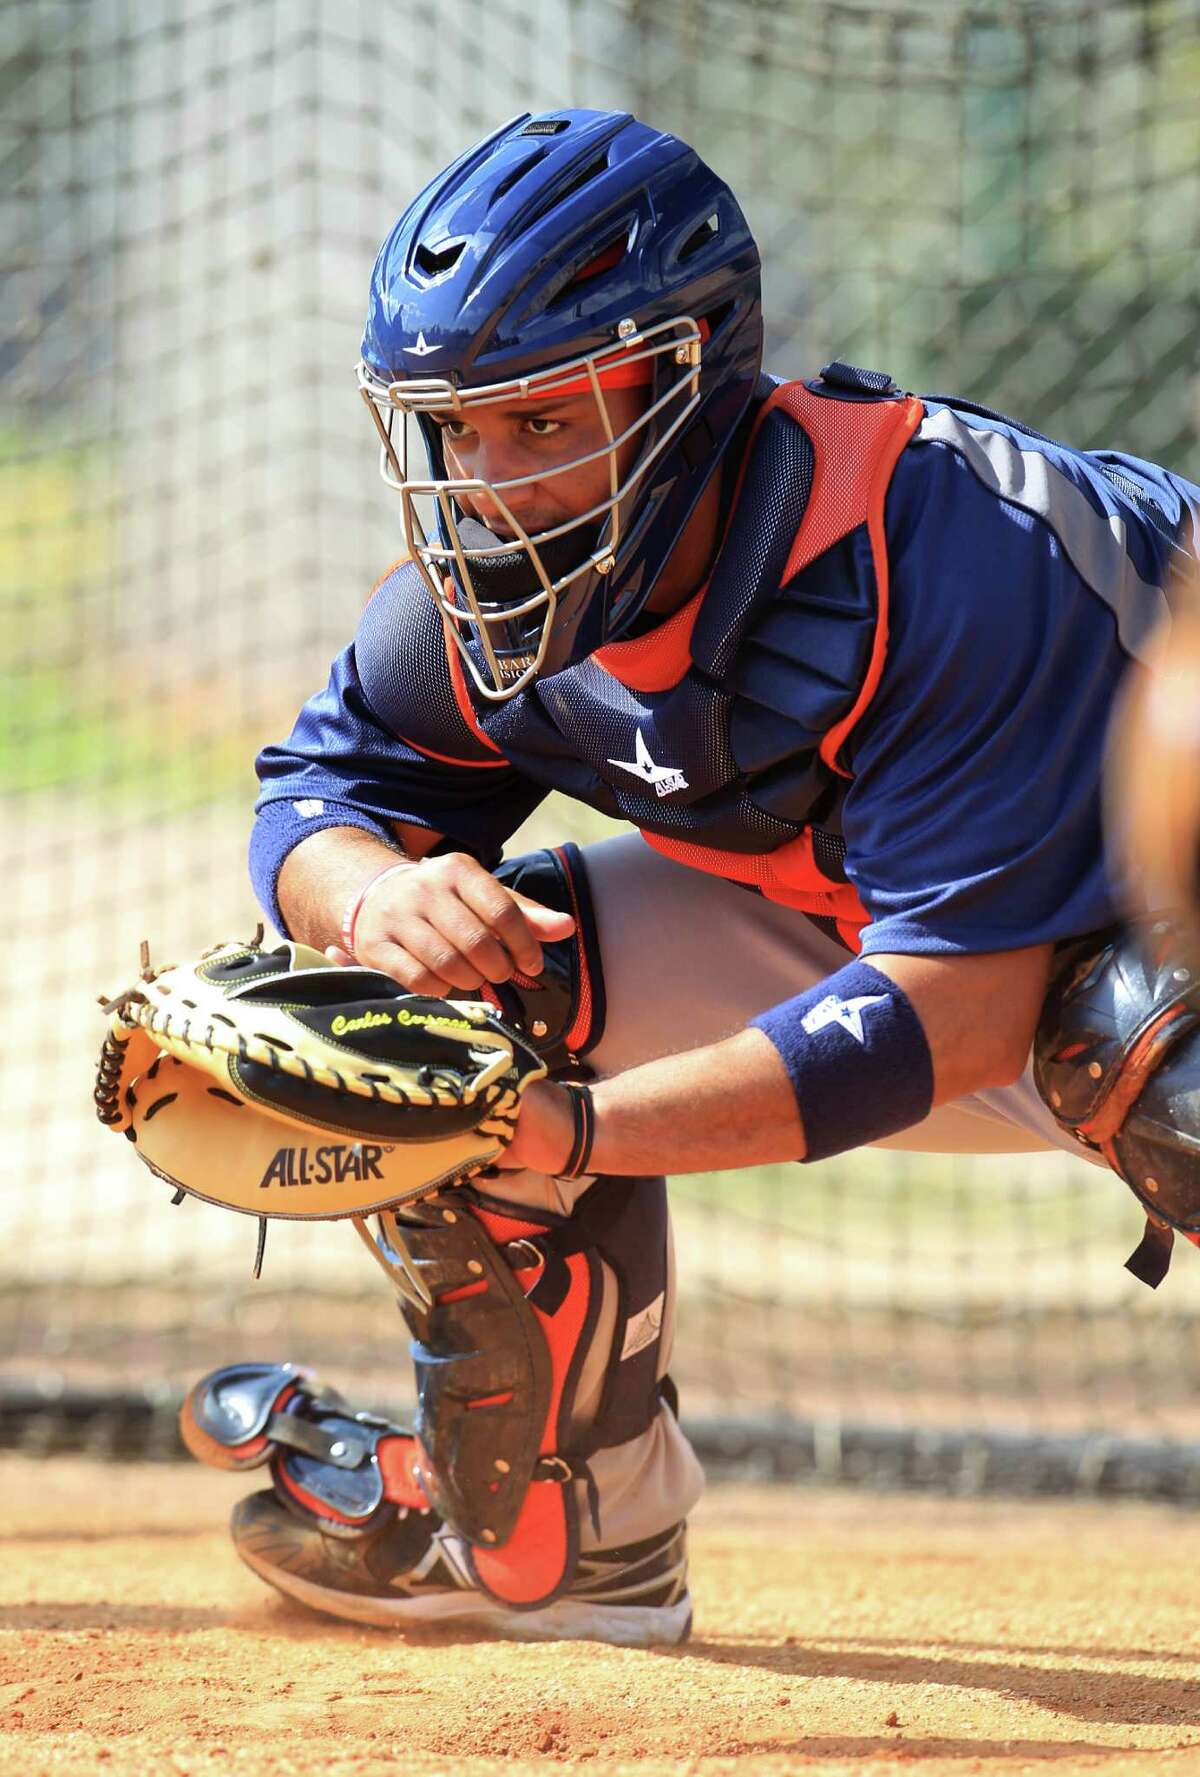 Carlos Corporan, who totaled six months with the Astros in 2011 and 2012, is expected to start the 2013 season as their backup catcher.